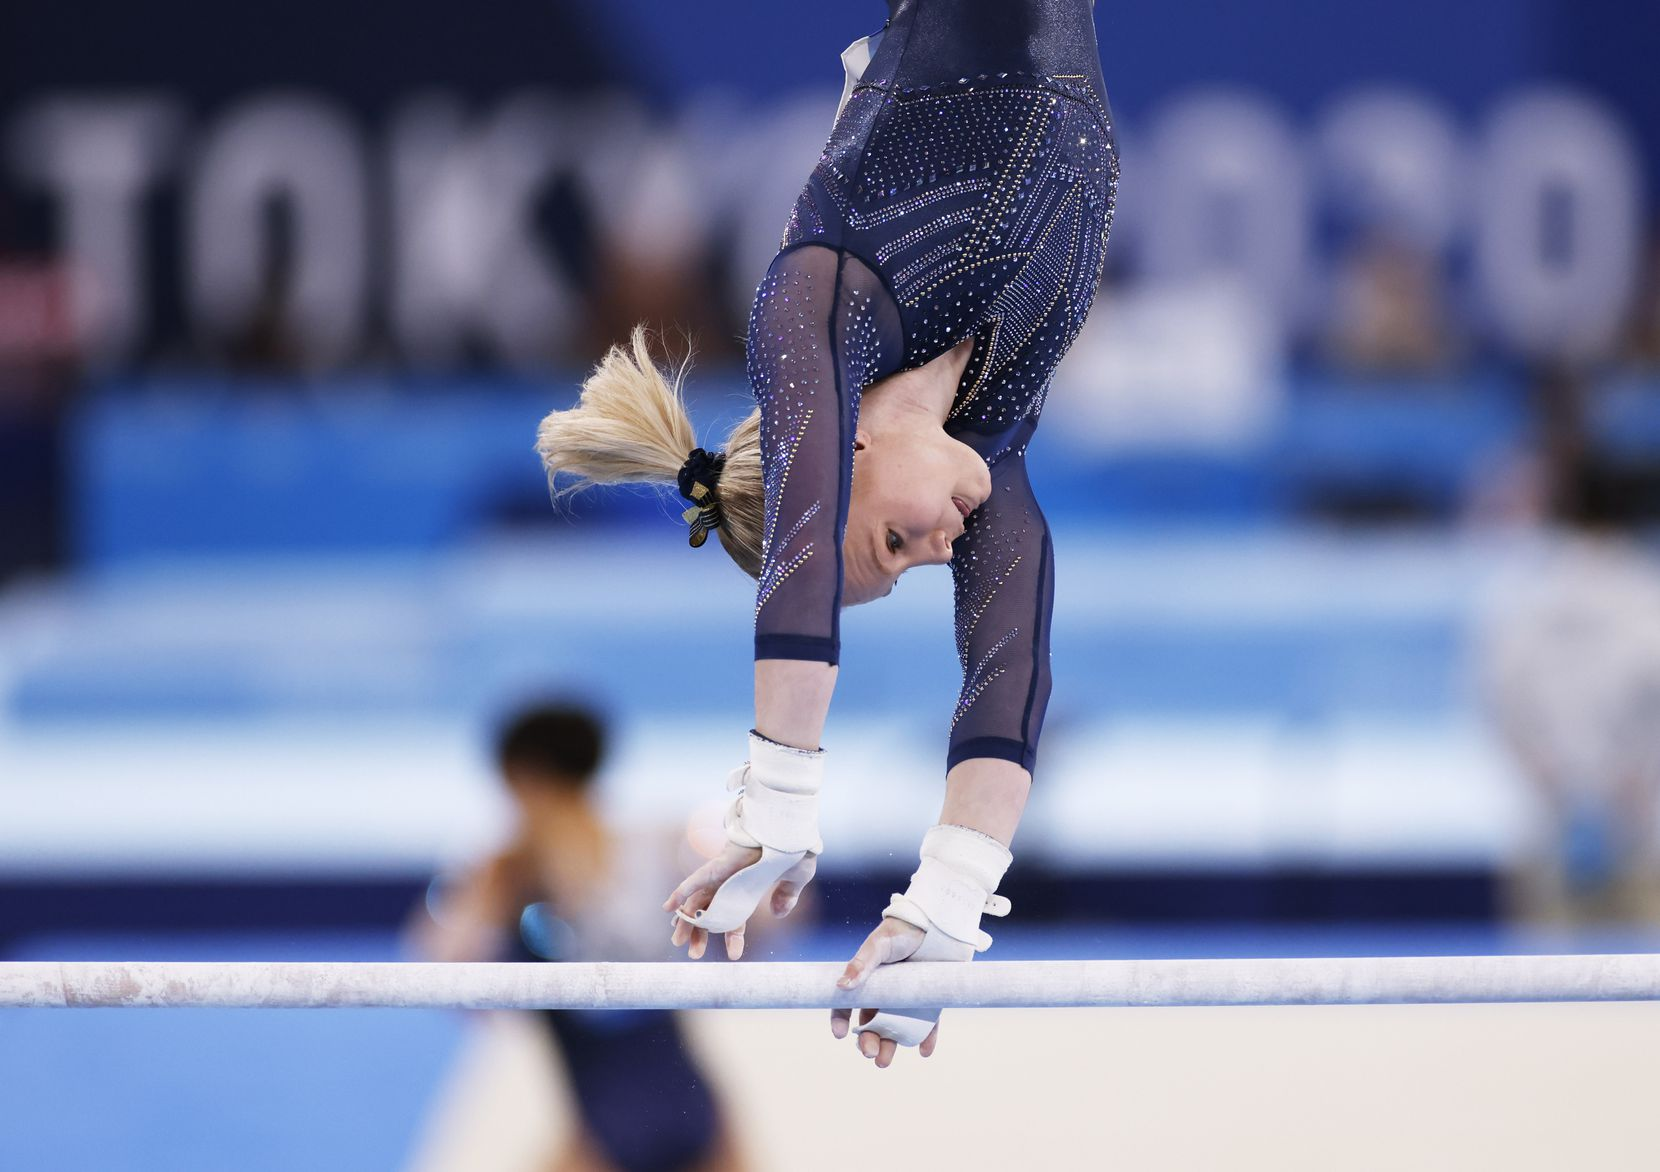 USA's Jade Carey competes on the uneven bars during the women's all-around final at the postponed 2020 Tokyo Olympics at Ariake Gymnastics Centre, on Thursday, July 29, 2021, in Tokyo, Japan. (Vernon Bryant/The Dallas Morning News)